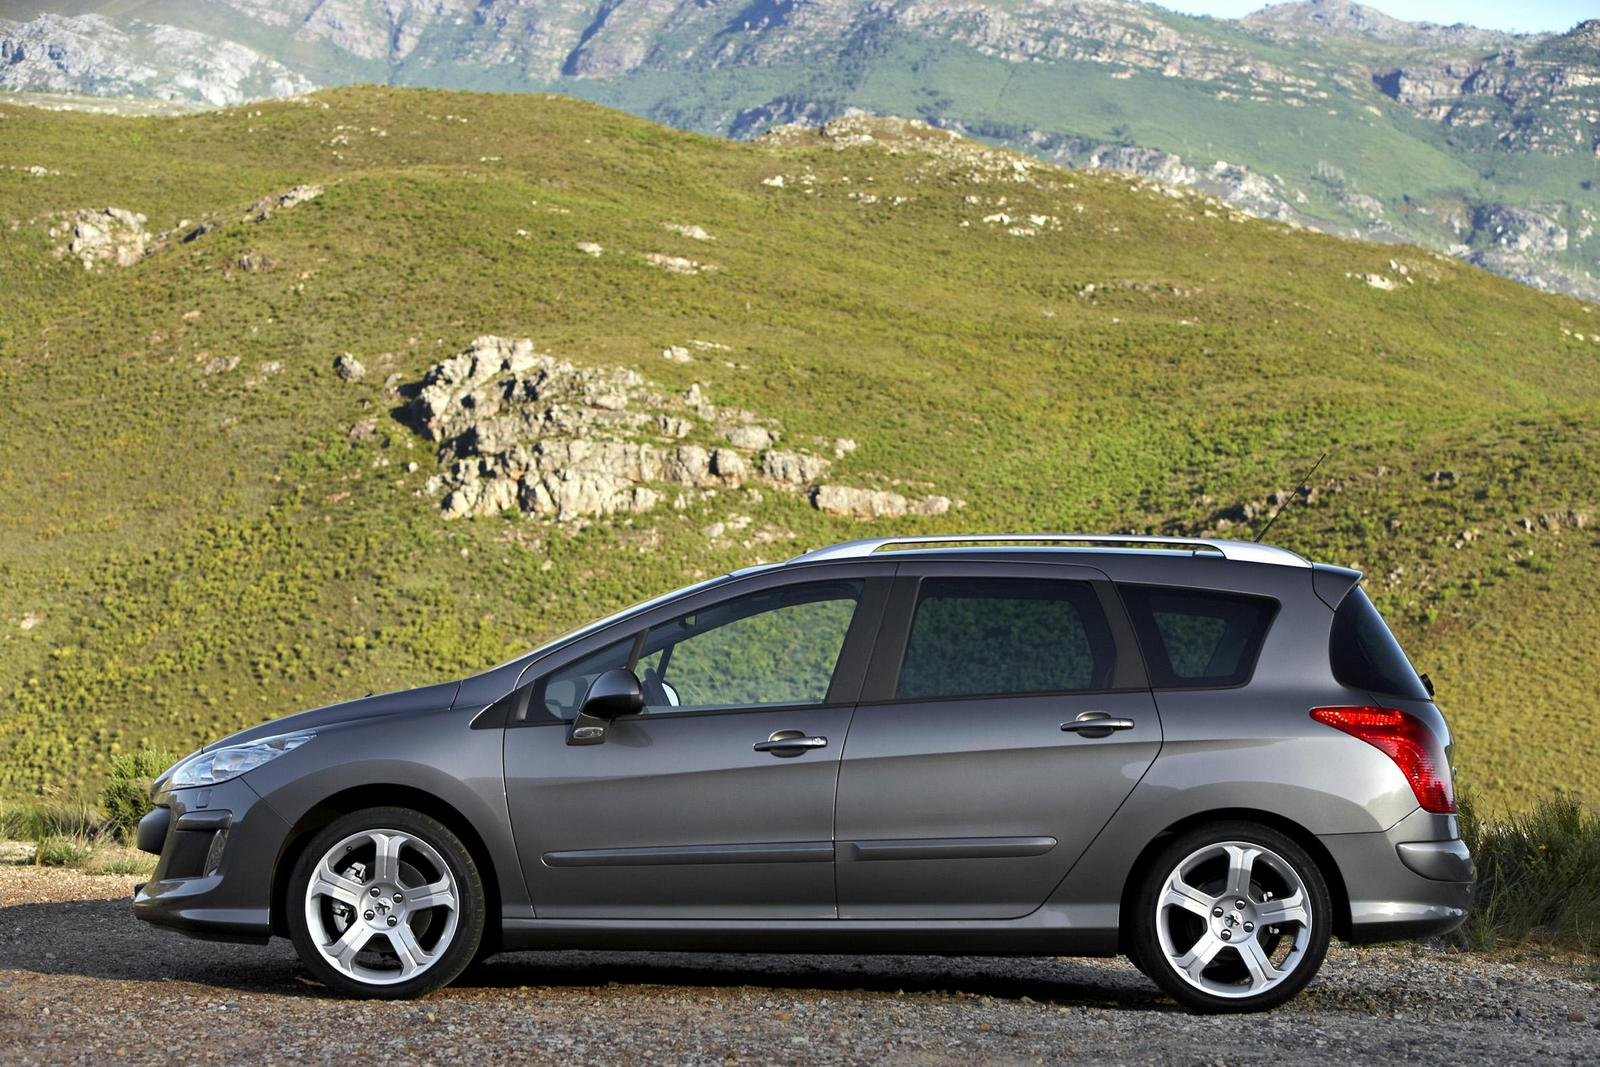 2008 peugeot 308 sw picture 233162 car review top speed. Black Bedroom Furniture Sets. Home Design Ideas